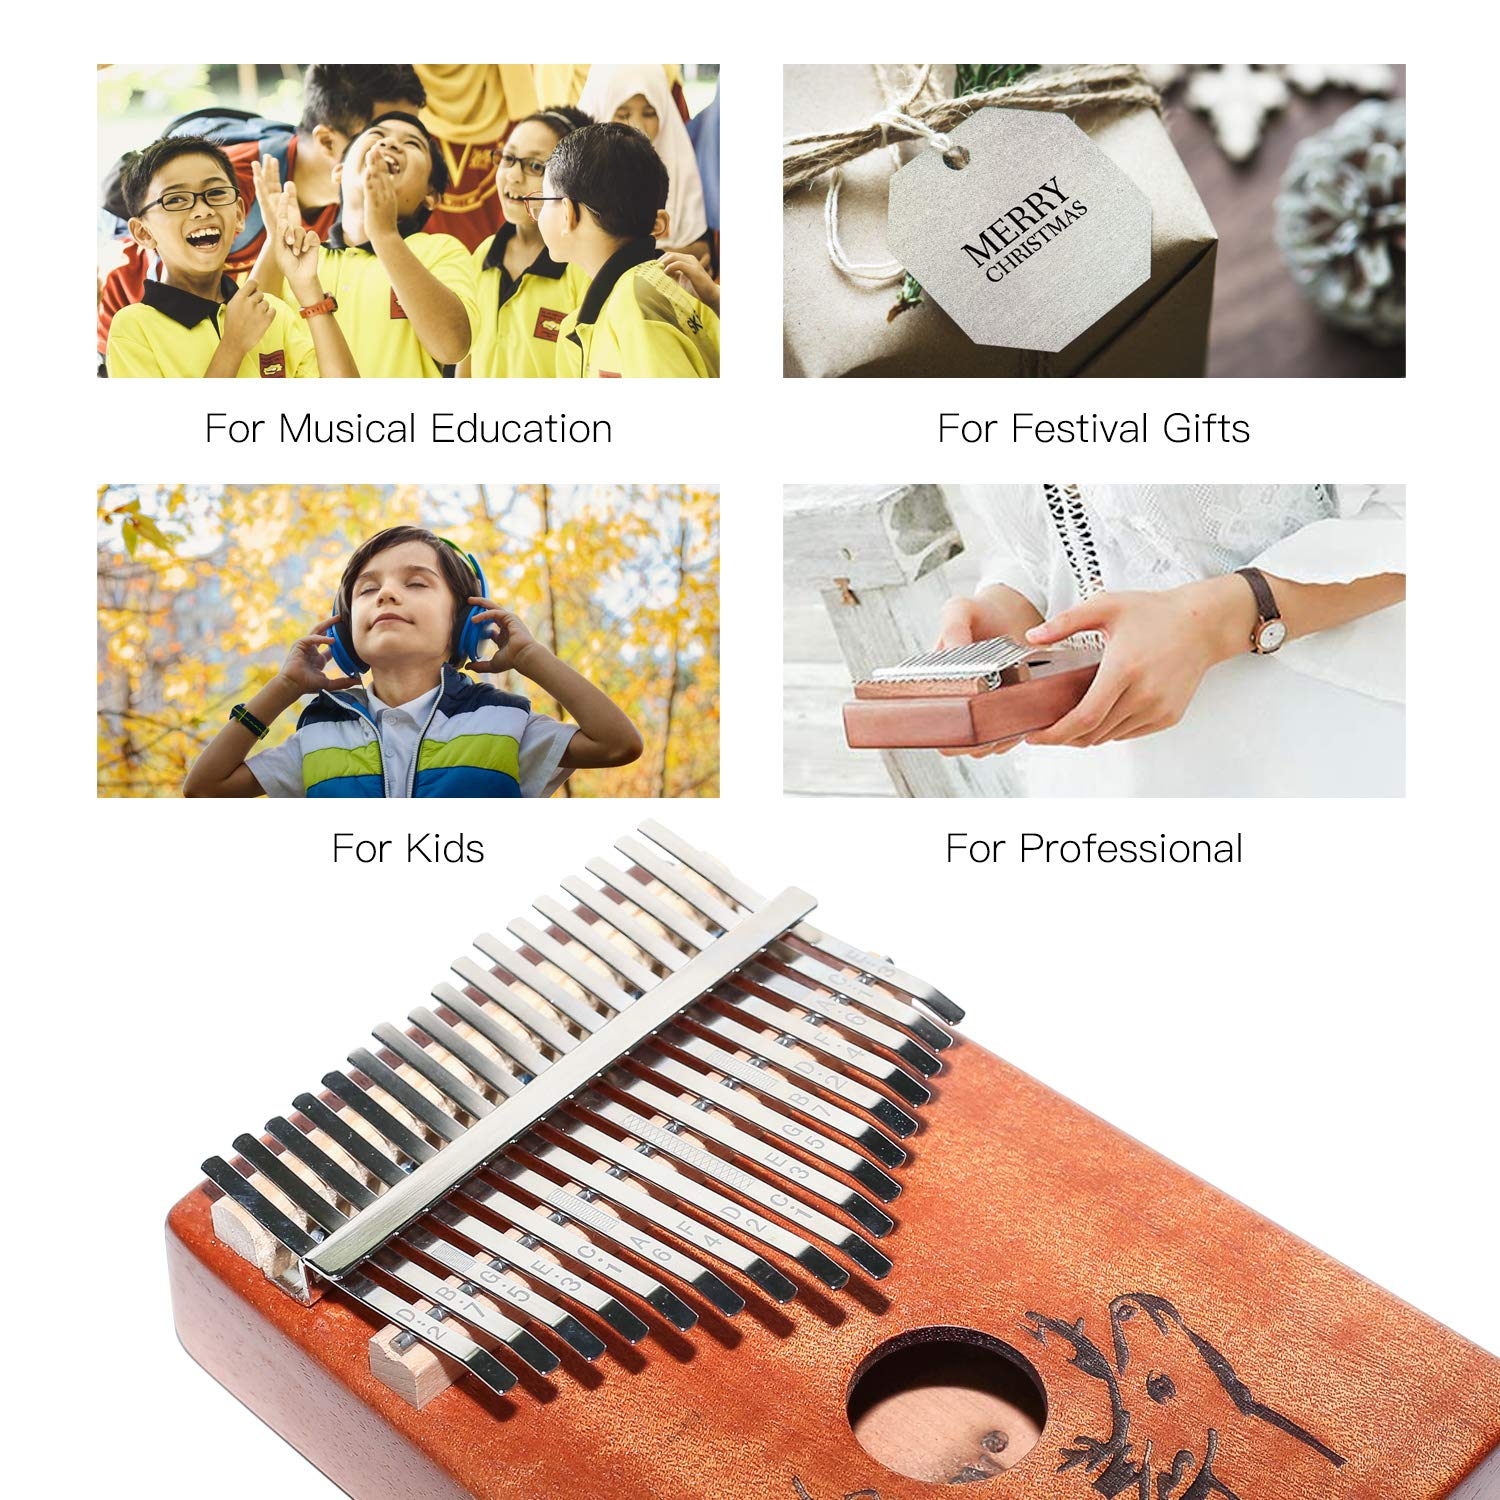 AECCN Kalimba 17 Keys Thumb Piano - Pocket Size With Study Instruction and Tune-Hammer & Simple Sheet Music, Christmas Day Birthday Gifts Idea for Kids Adults Beginners, Professionals (Deer) by AECCN (Image #6)